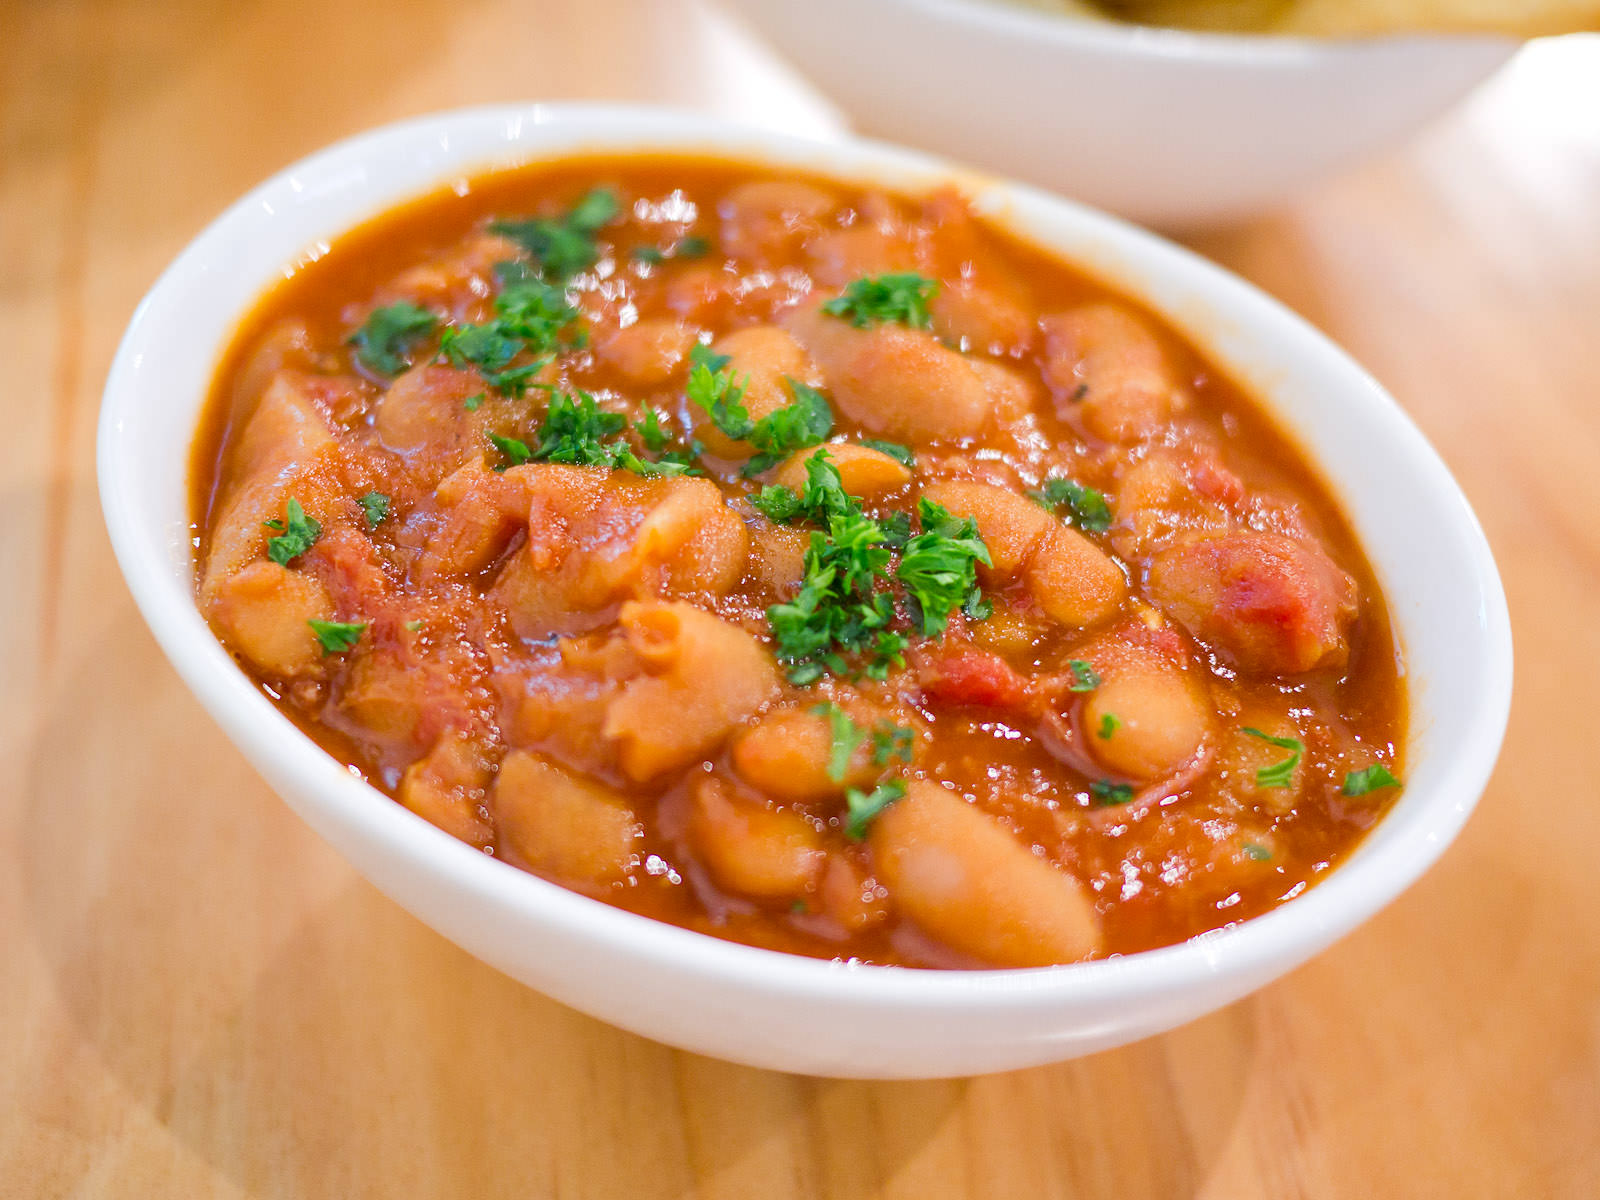 Baked beans with smoked ham hock (AU$5)